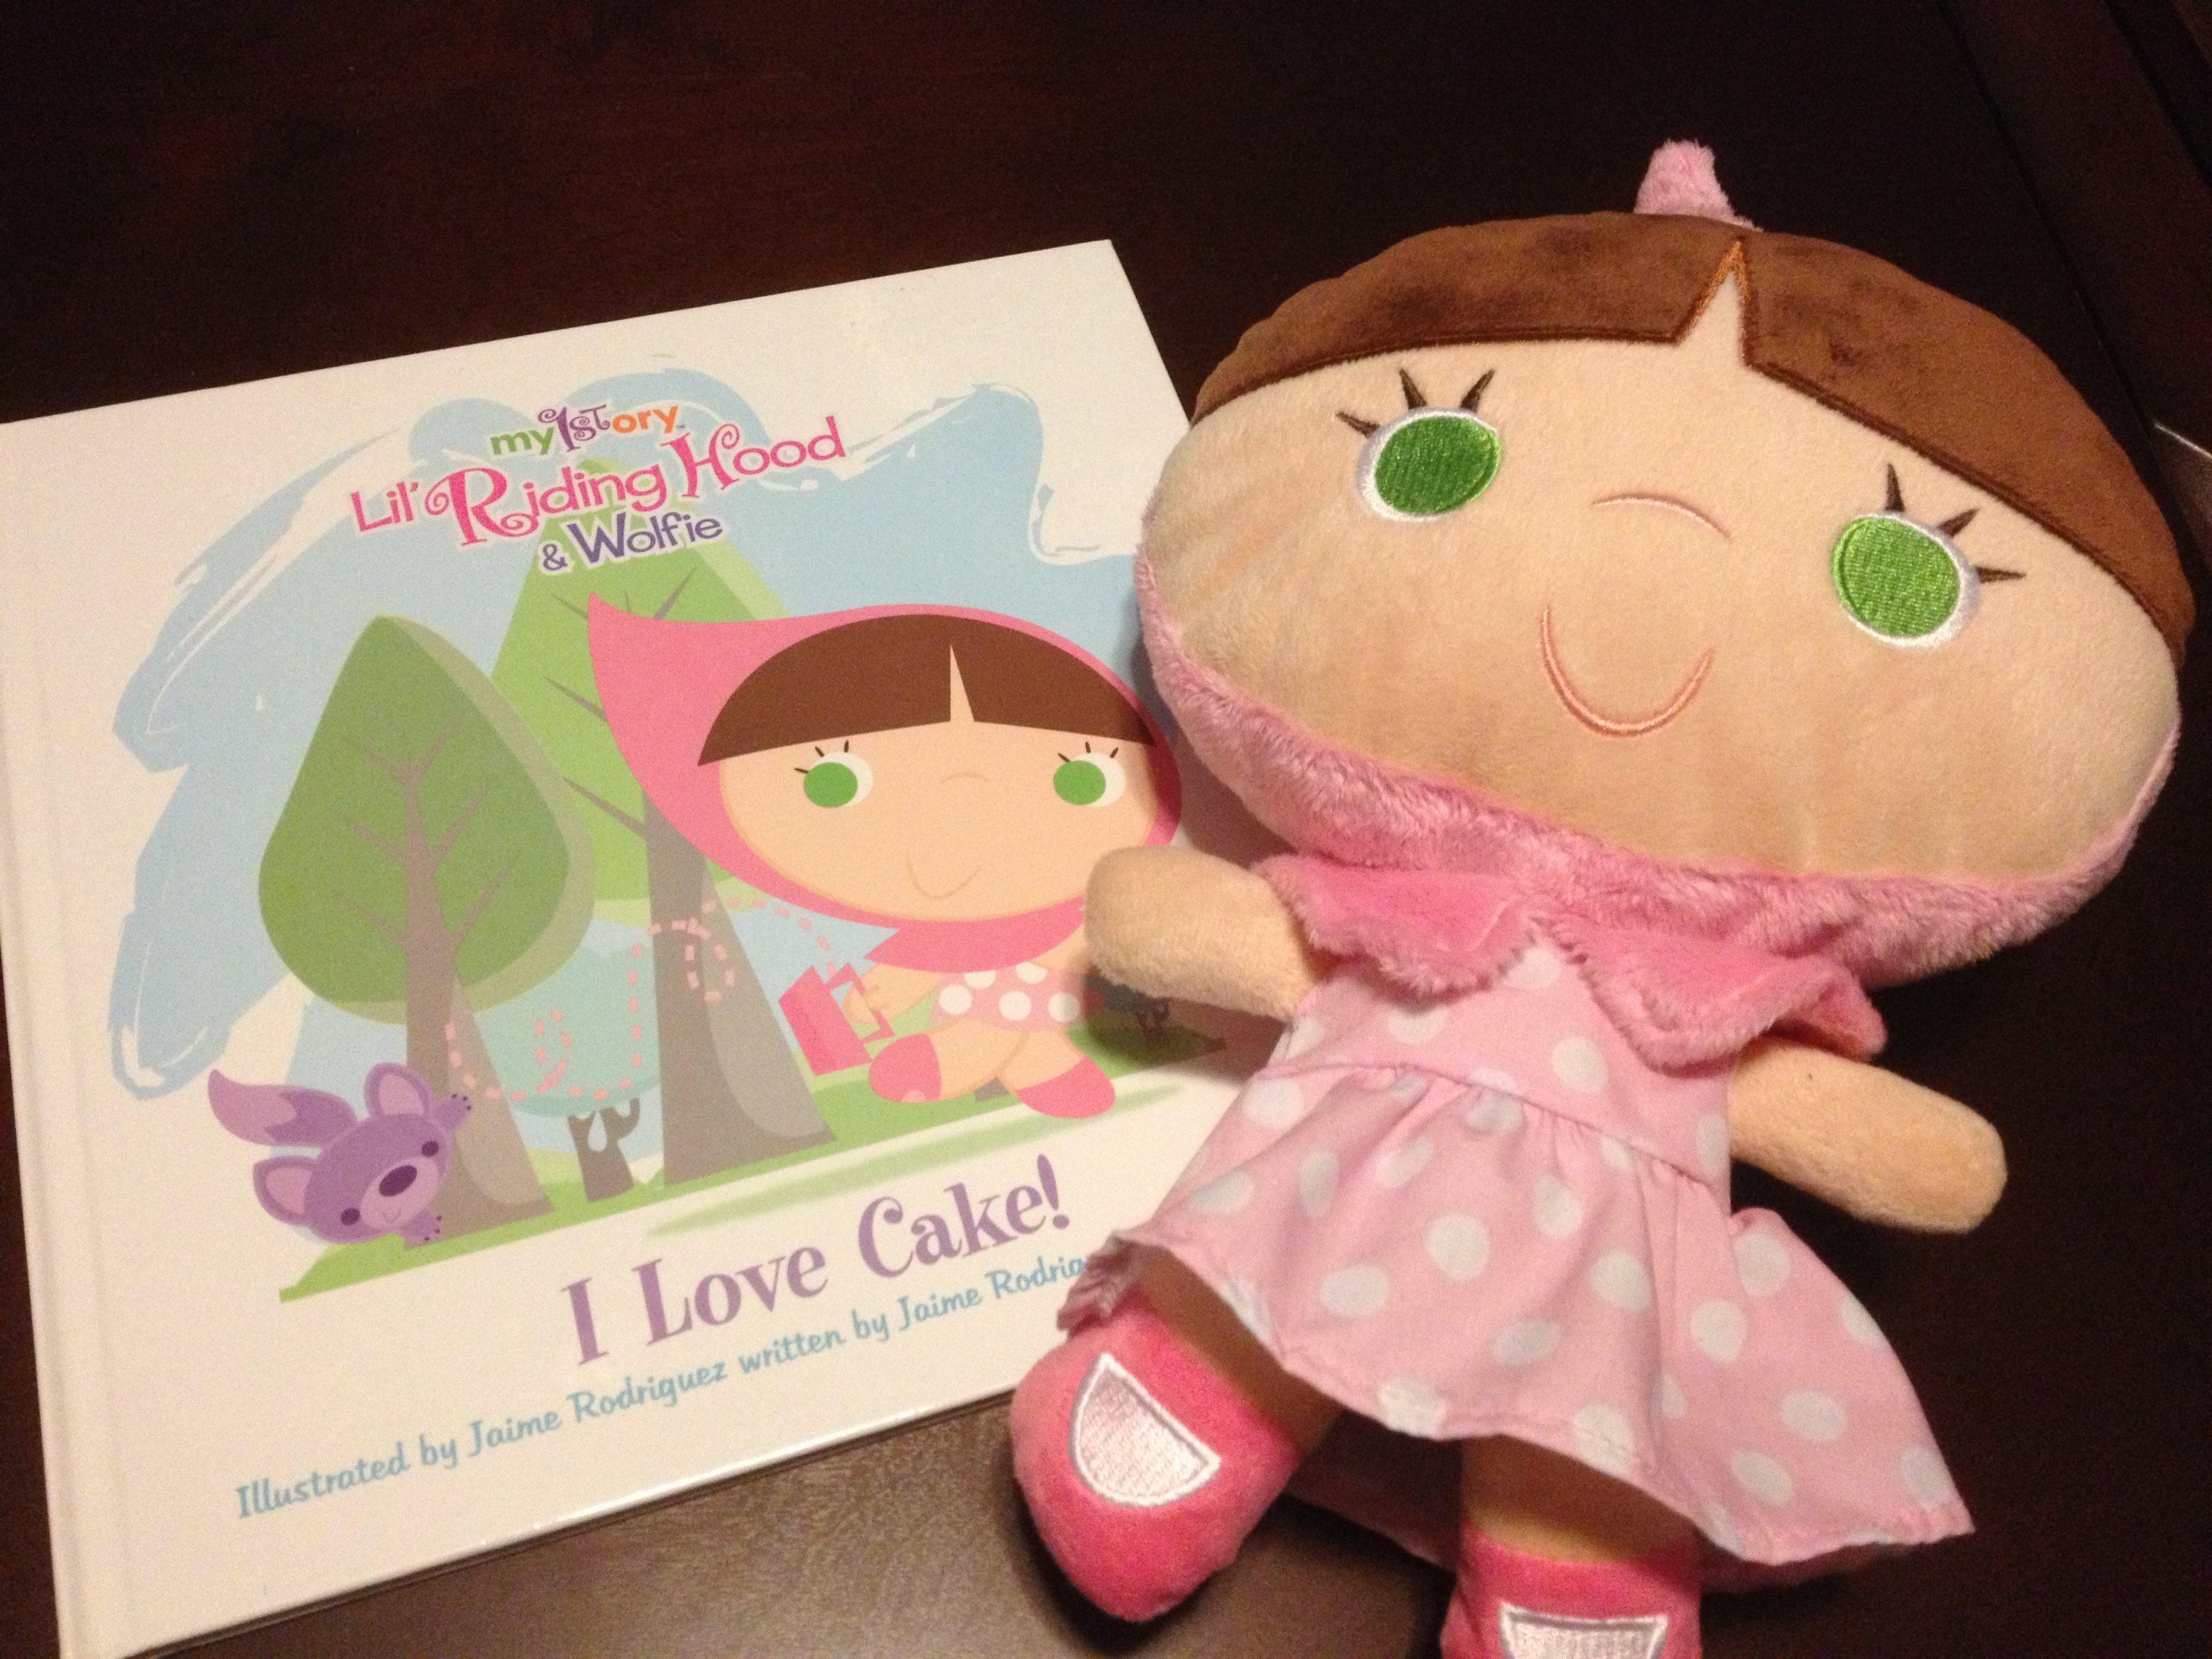 Give it Forward: My1story Lil' Riding Hood Plush and Storybook